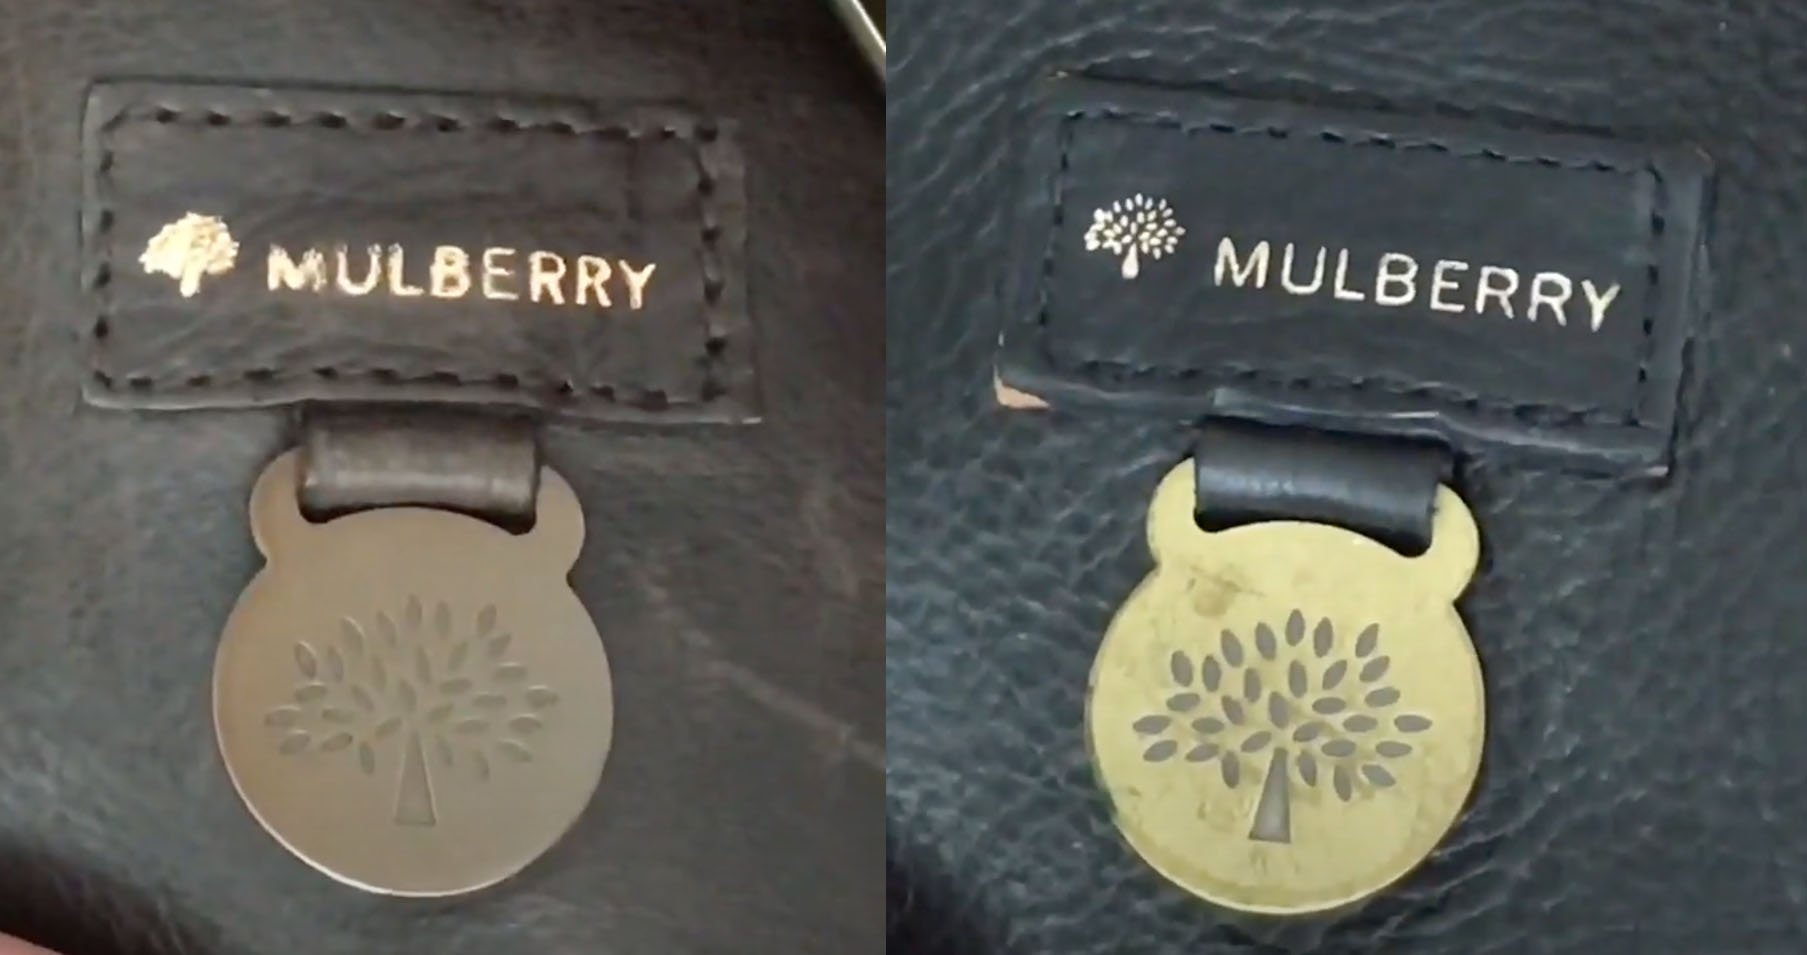 Done in the label's signature Sans Serif font, the Mulberry heat stamp on the real Mulberry handbag (left) is thicker compared to the fake one (right) as seen on Chicprofessor's YouTube channel